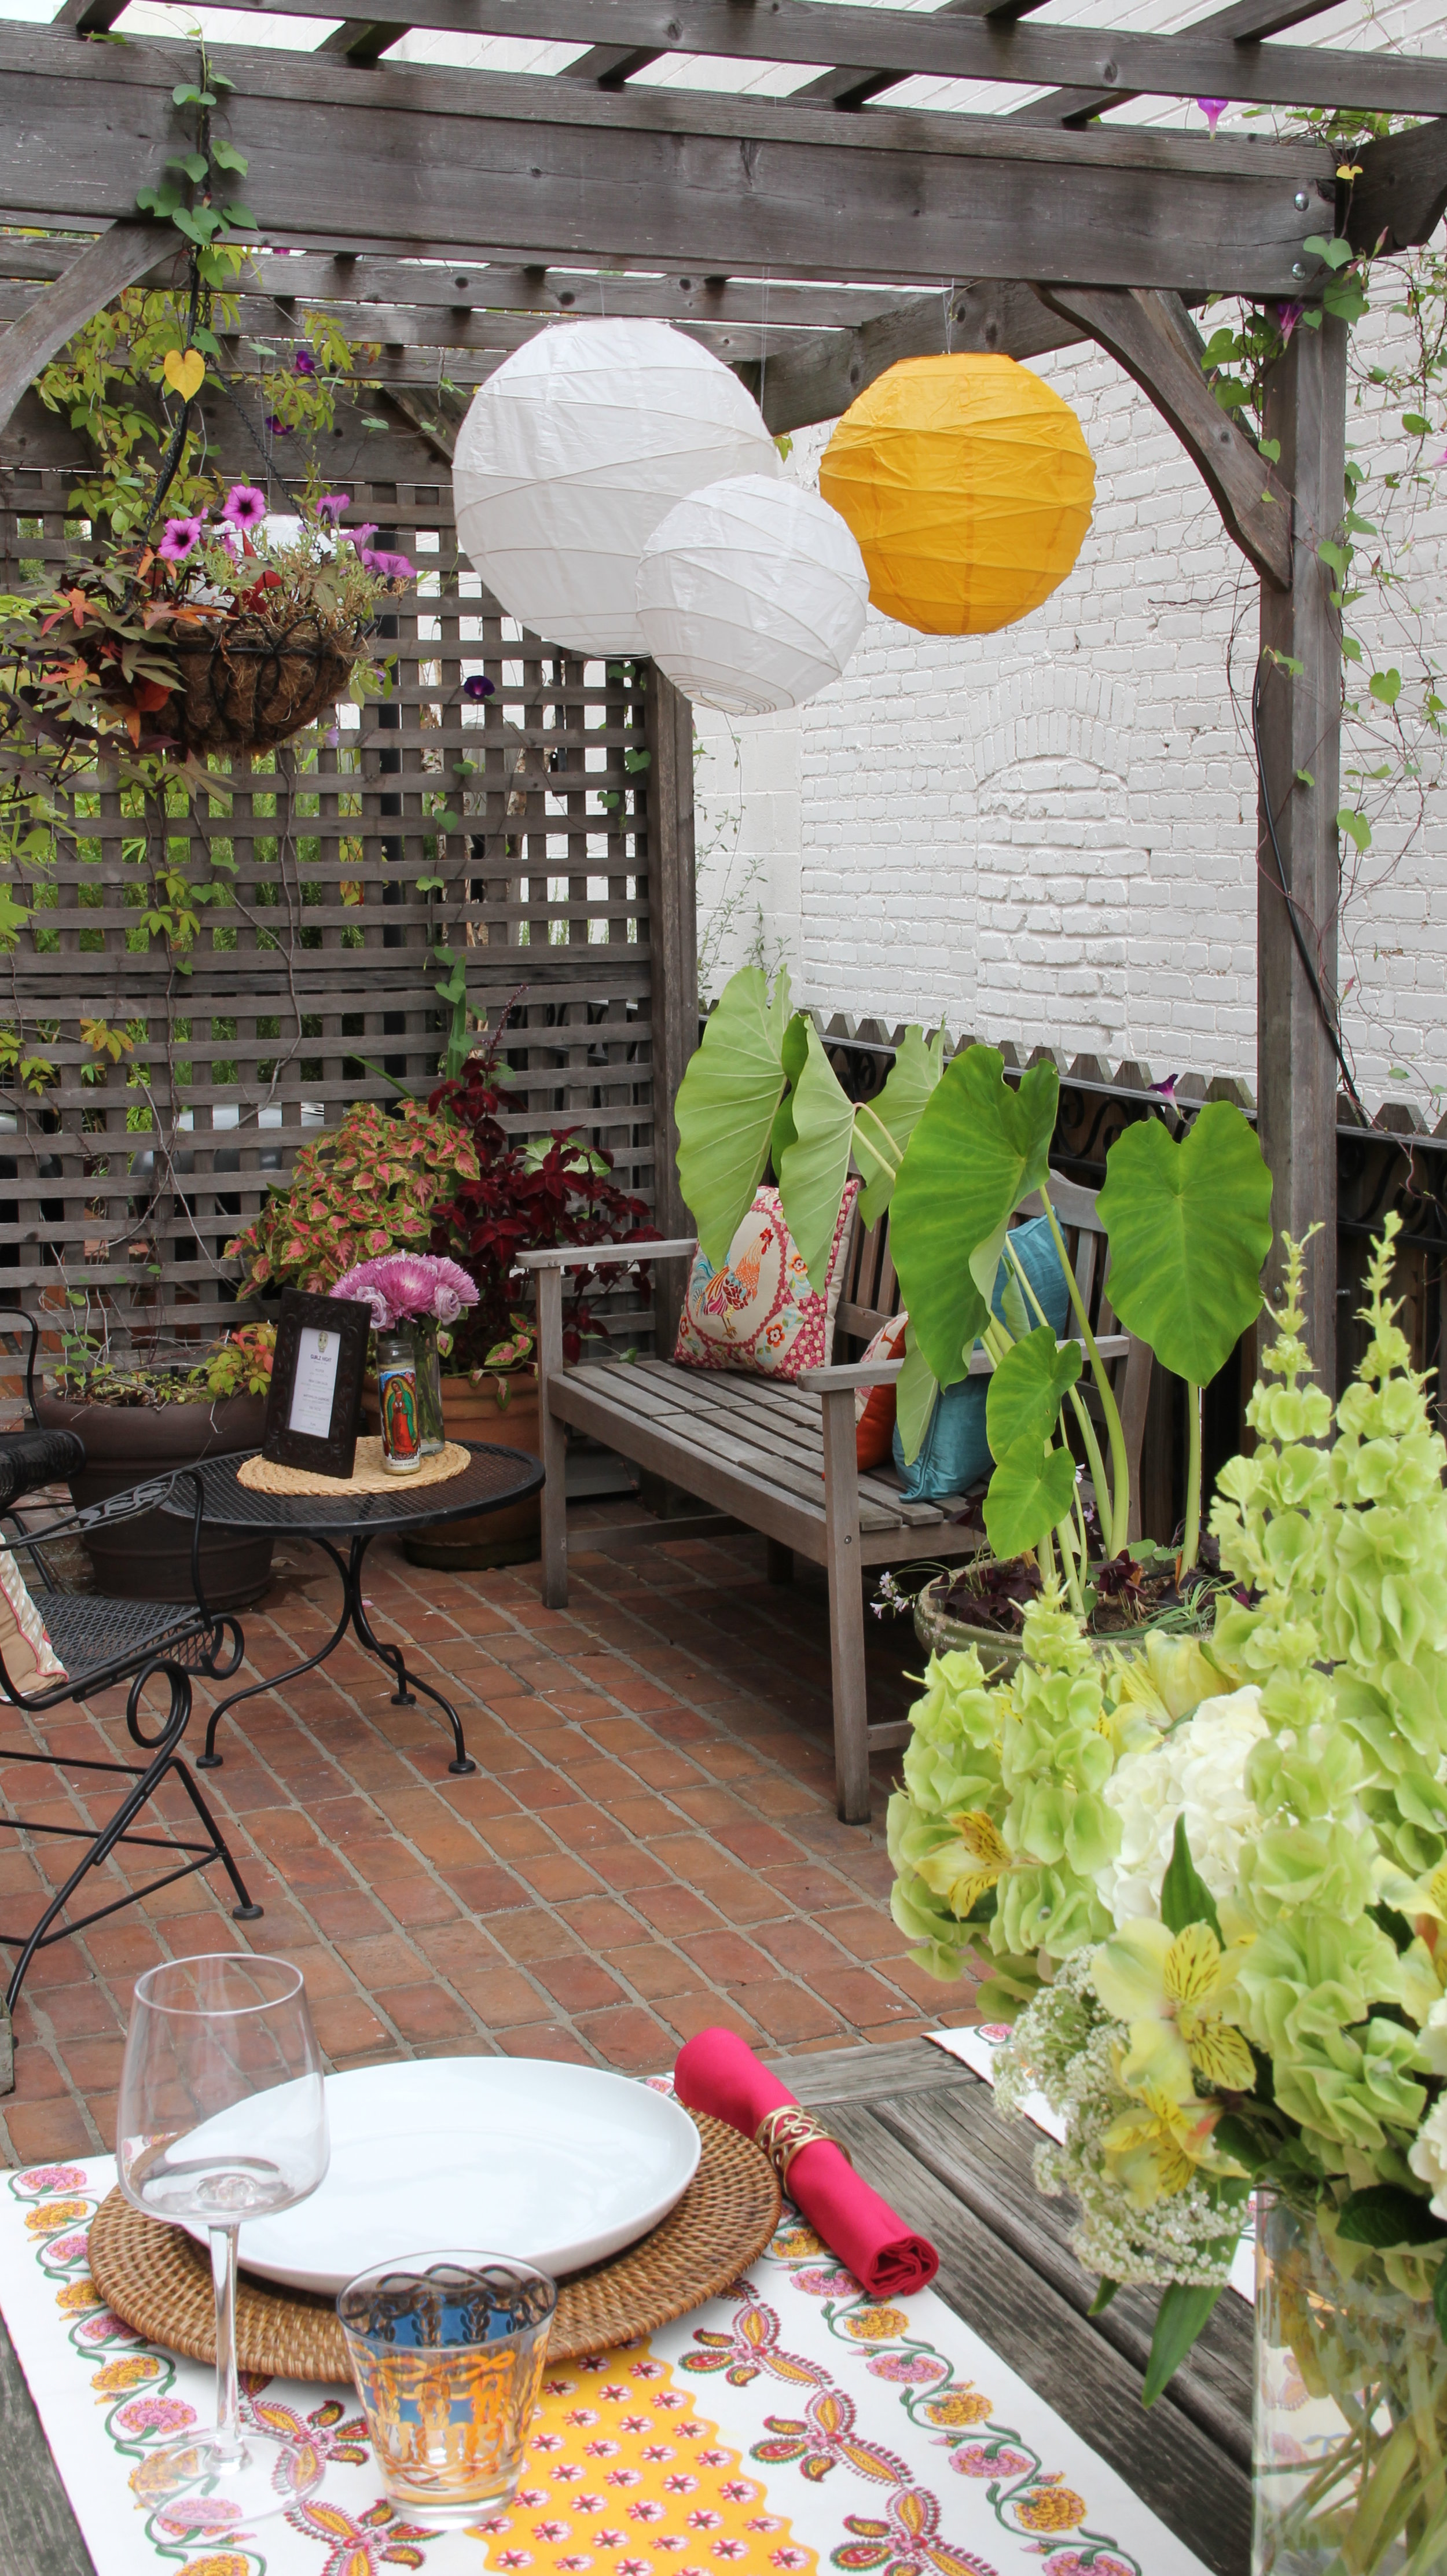 Outdoor terrace bbq deck patio entertaining party hosting mexican latin before after decorating design